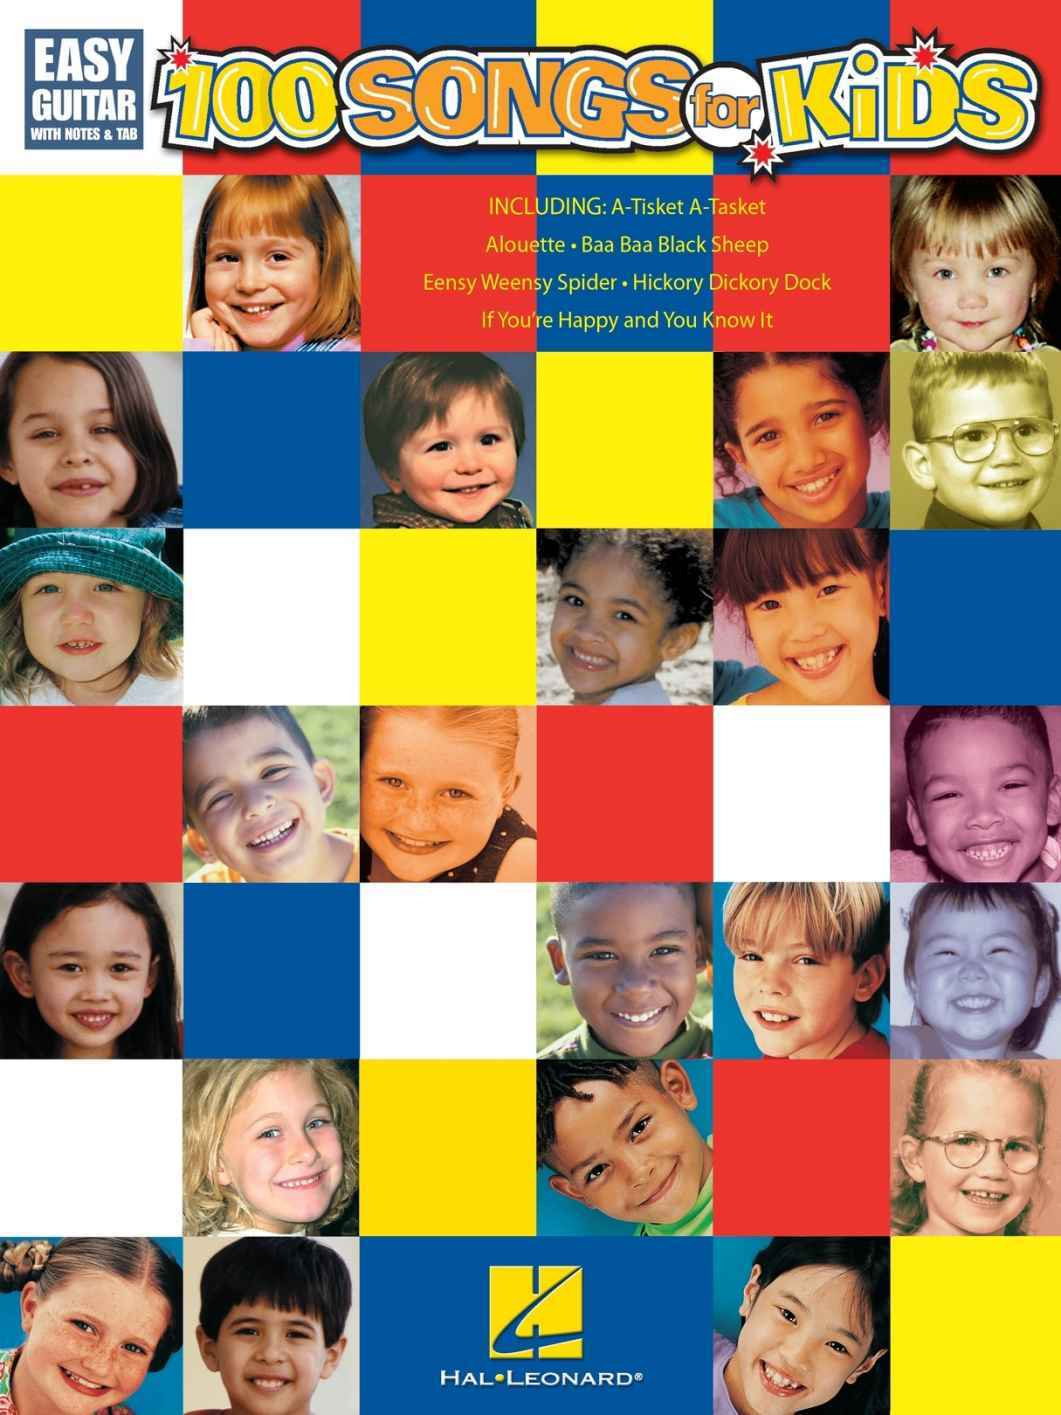 100-songs-for-kids-cover.jpg